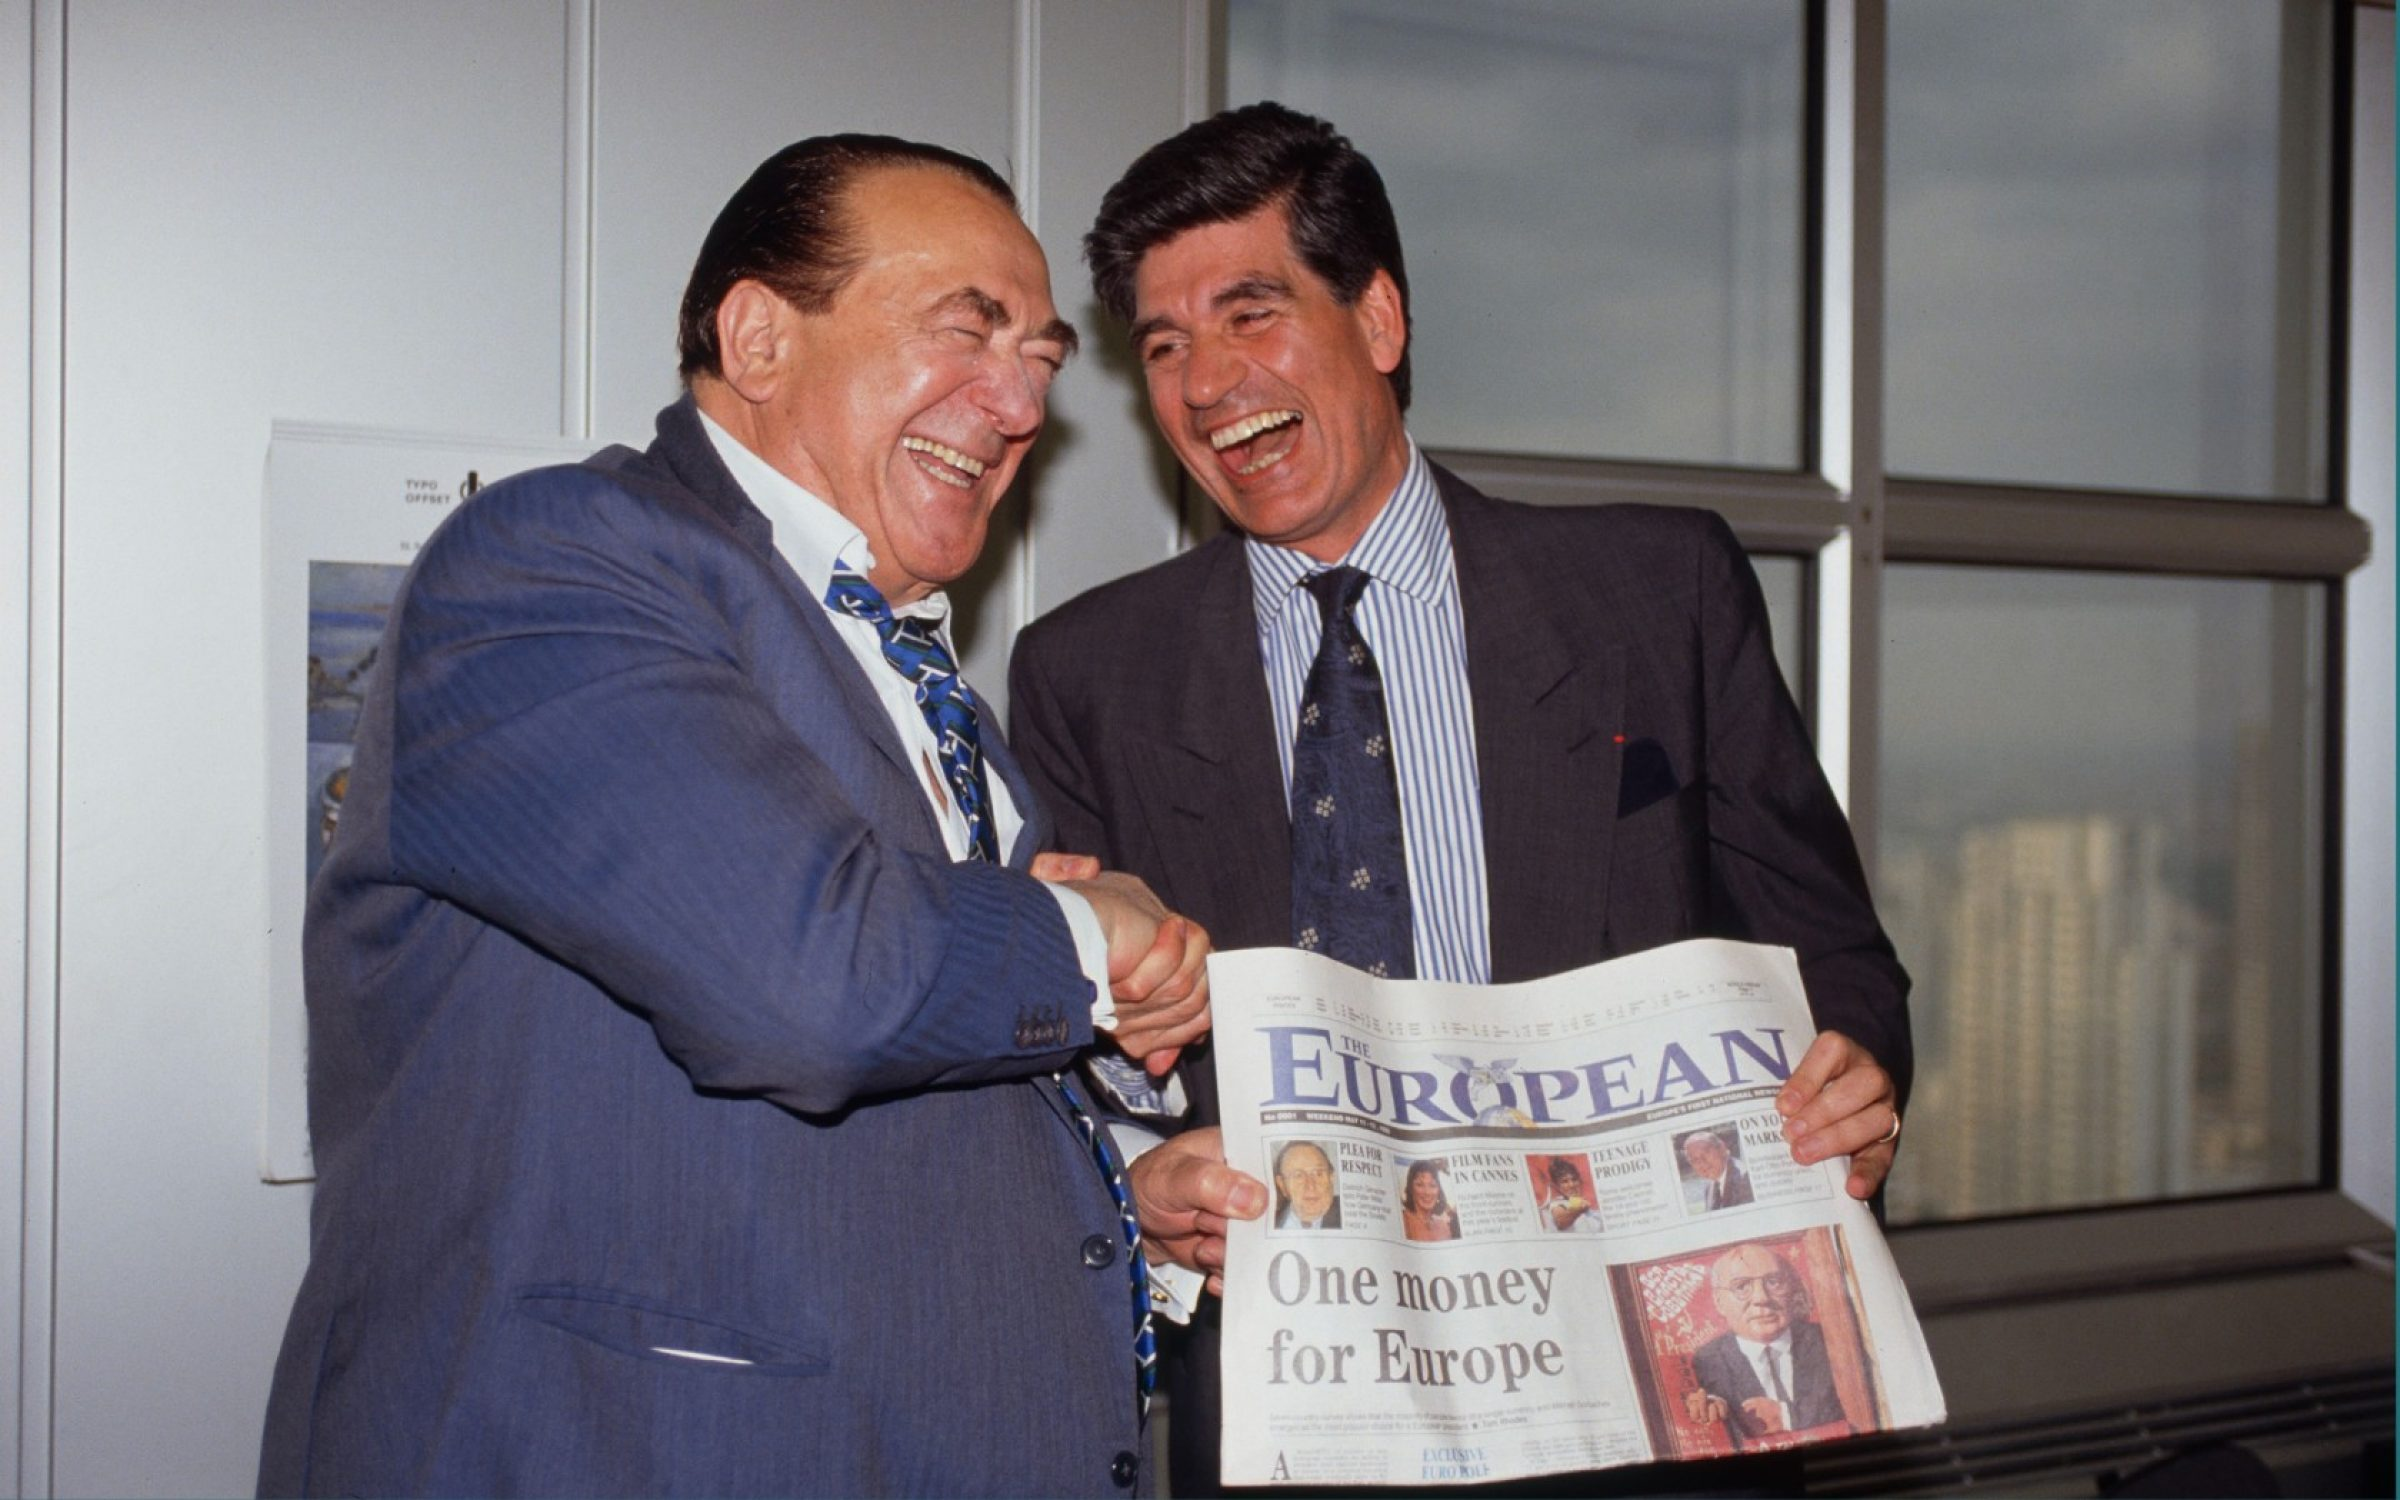 Robert Maxwell, left, celebrating the first edition of 'The European' in 1990 with Maurice Levy of Publicis. Credit: Michel Turpin / Sygma via Getty Images.